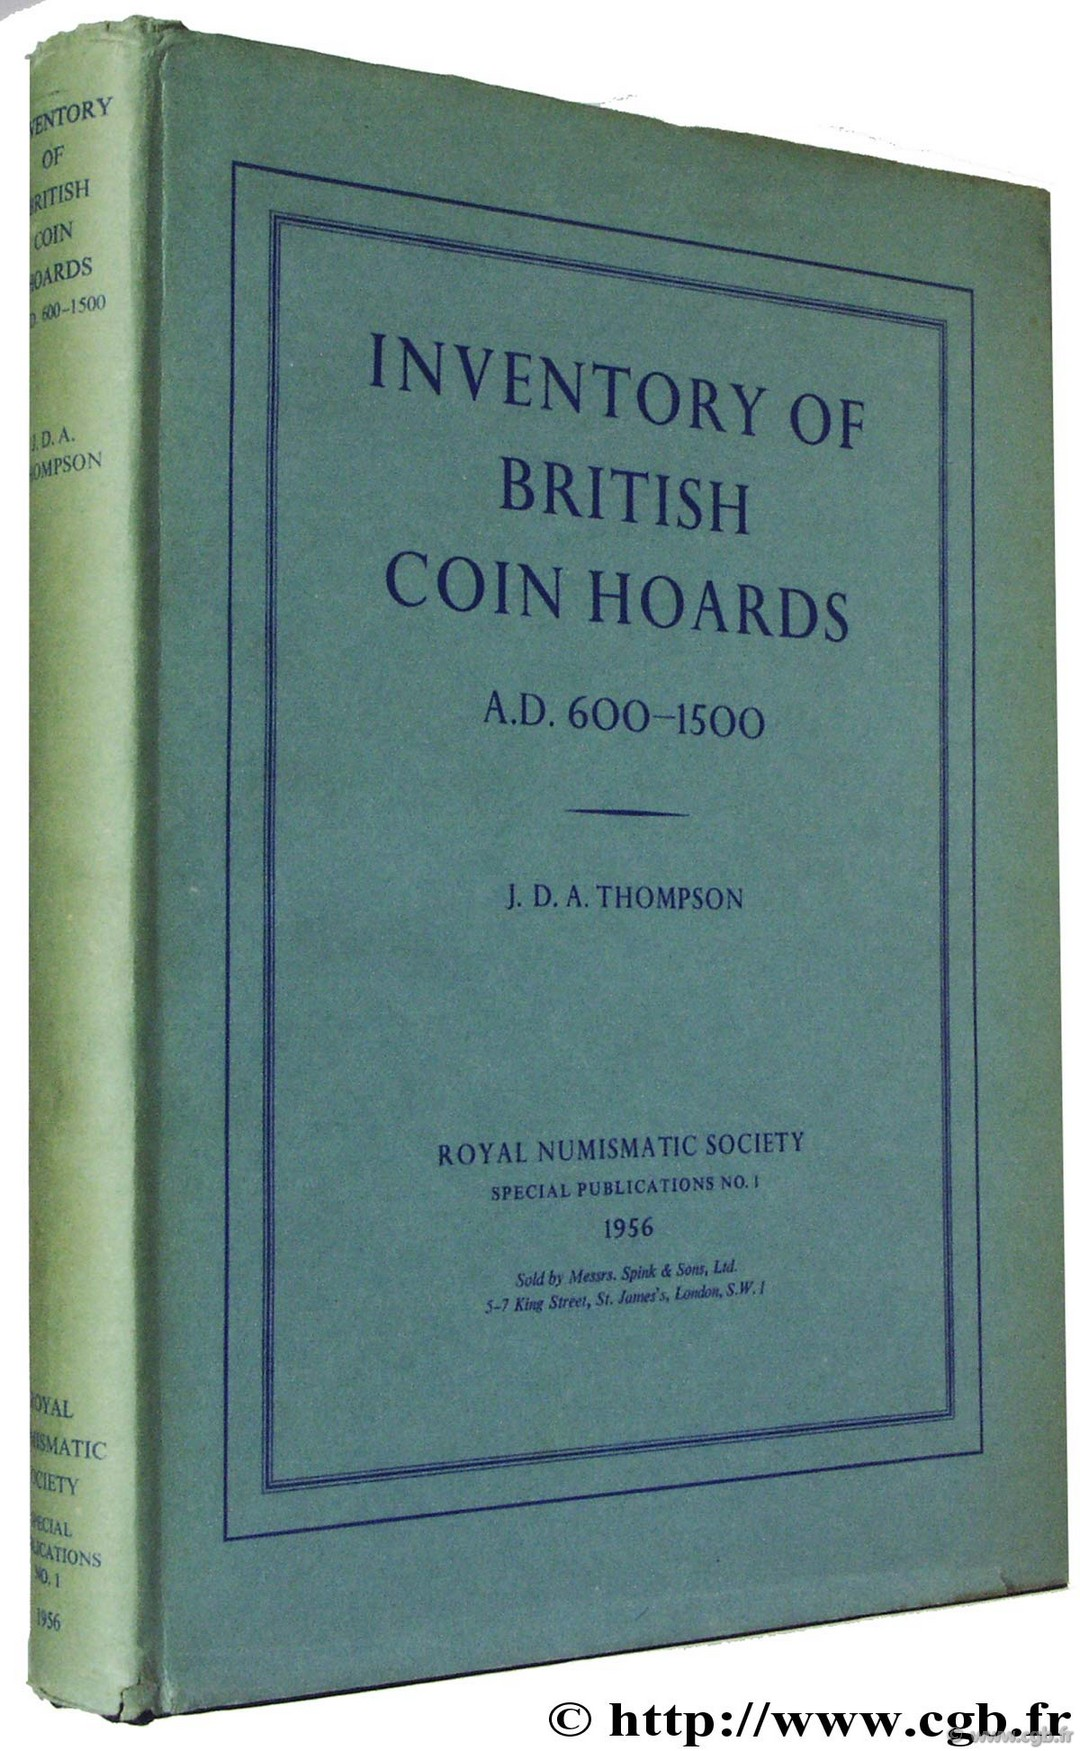 Inventory of British Coins Hoards A.D. 600-1500, Royal Numismatic Society n° 1 THOMPSON J.-D.-A.